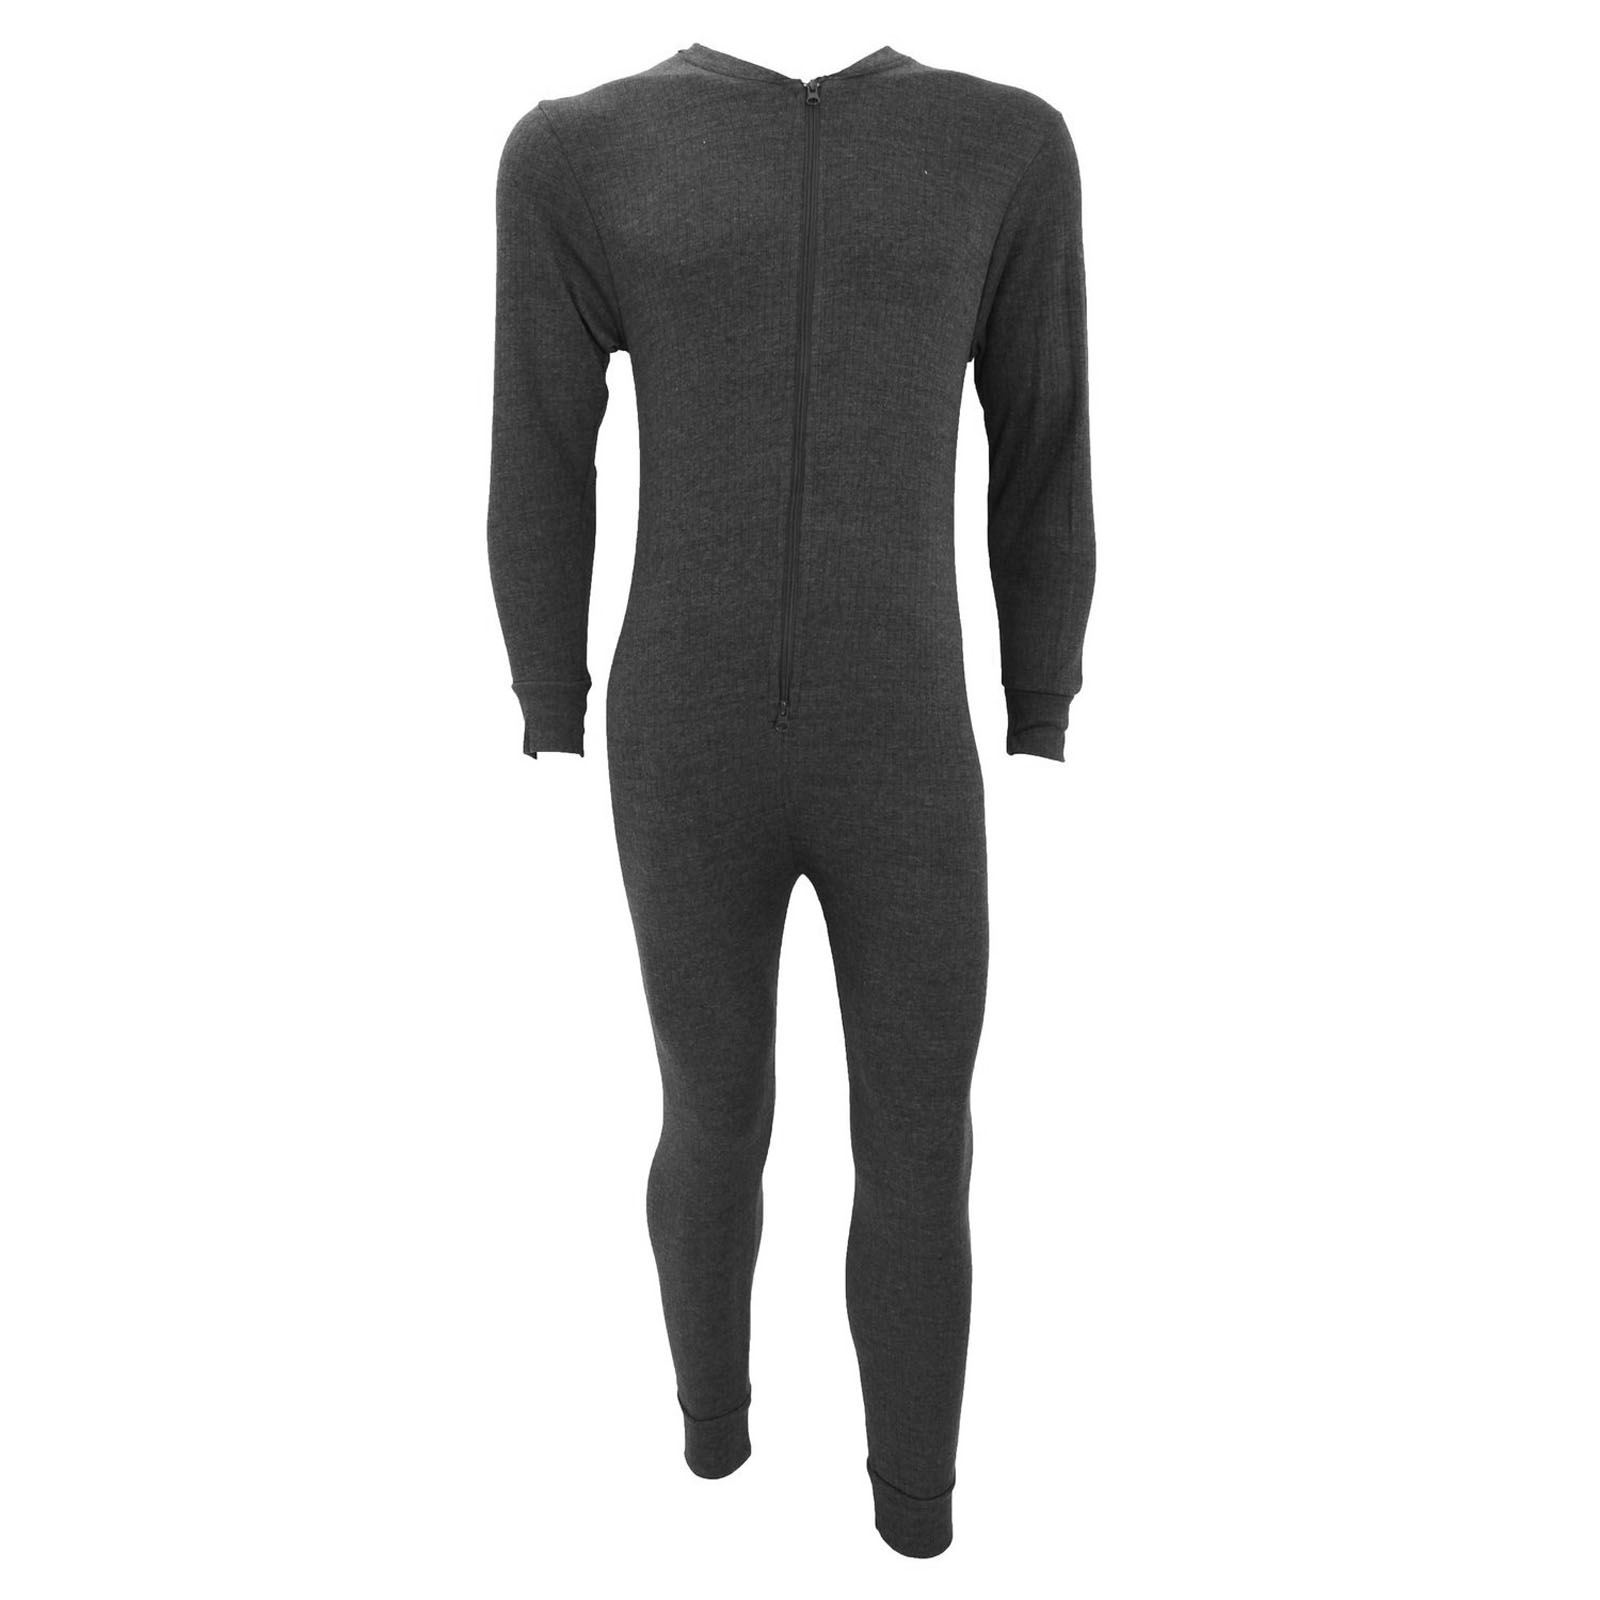 KIDS ADULTS MENS THERMAL UNDERWEAR, VEST, LONG JOHNS, ONESIE THERMAL ALL IN ONE